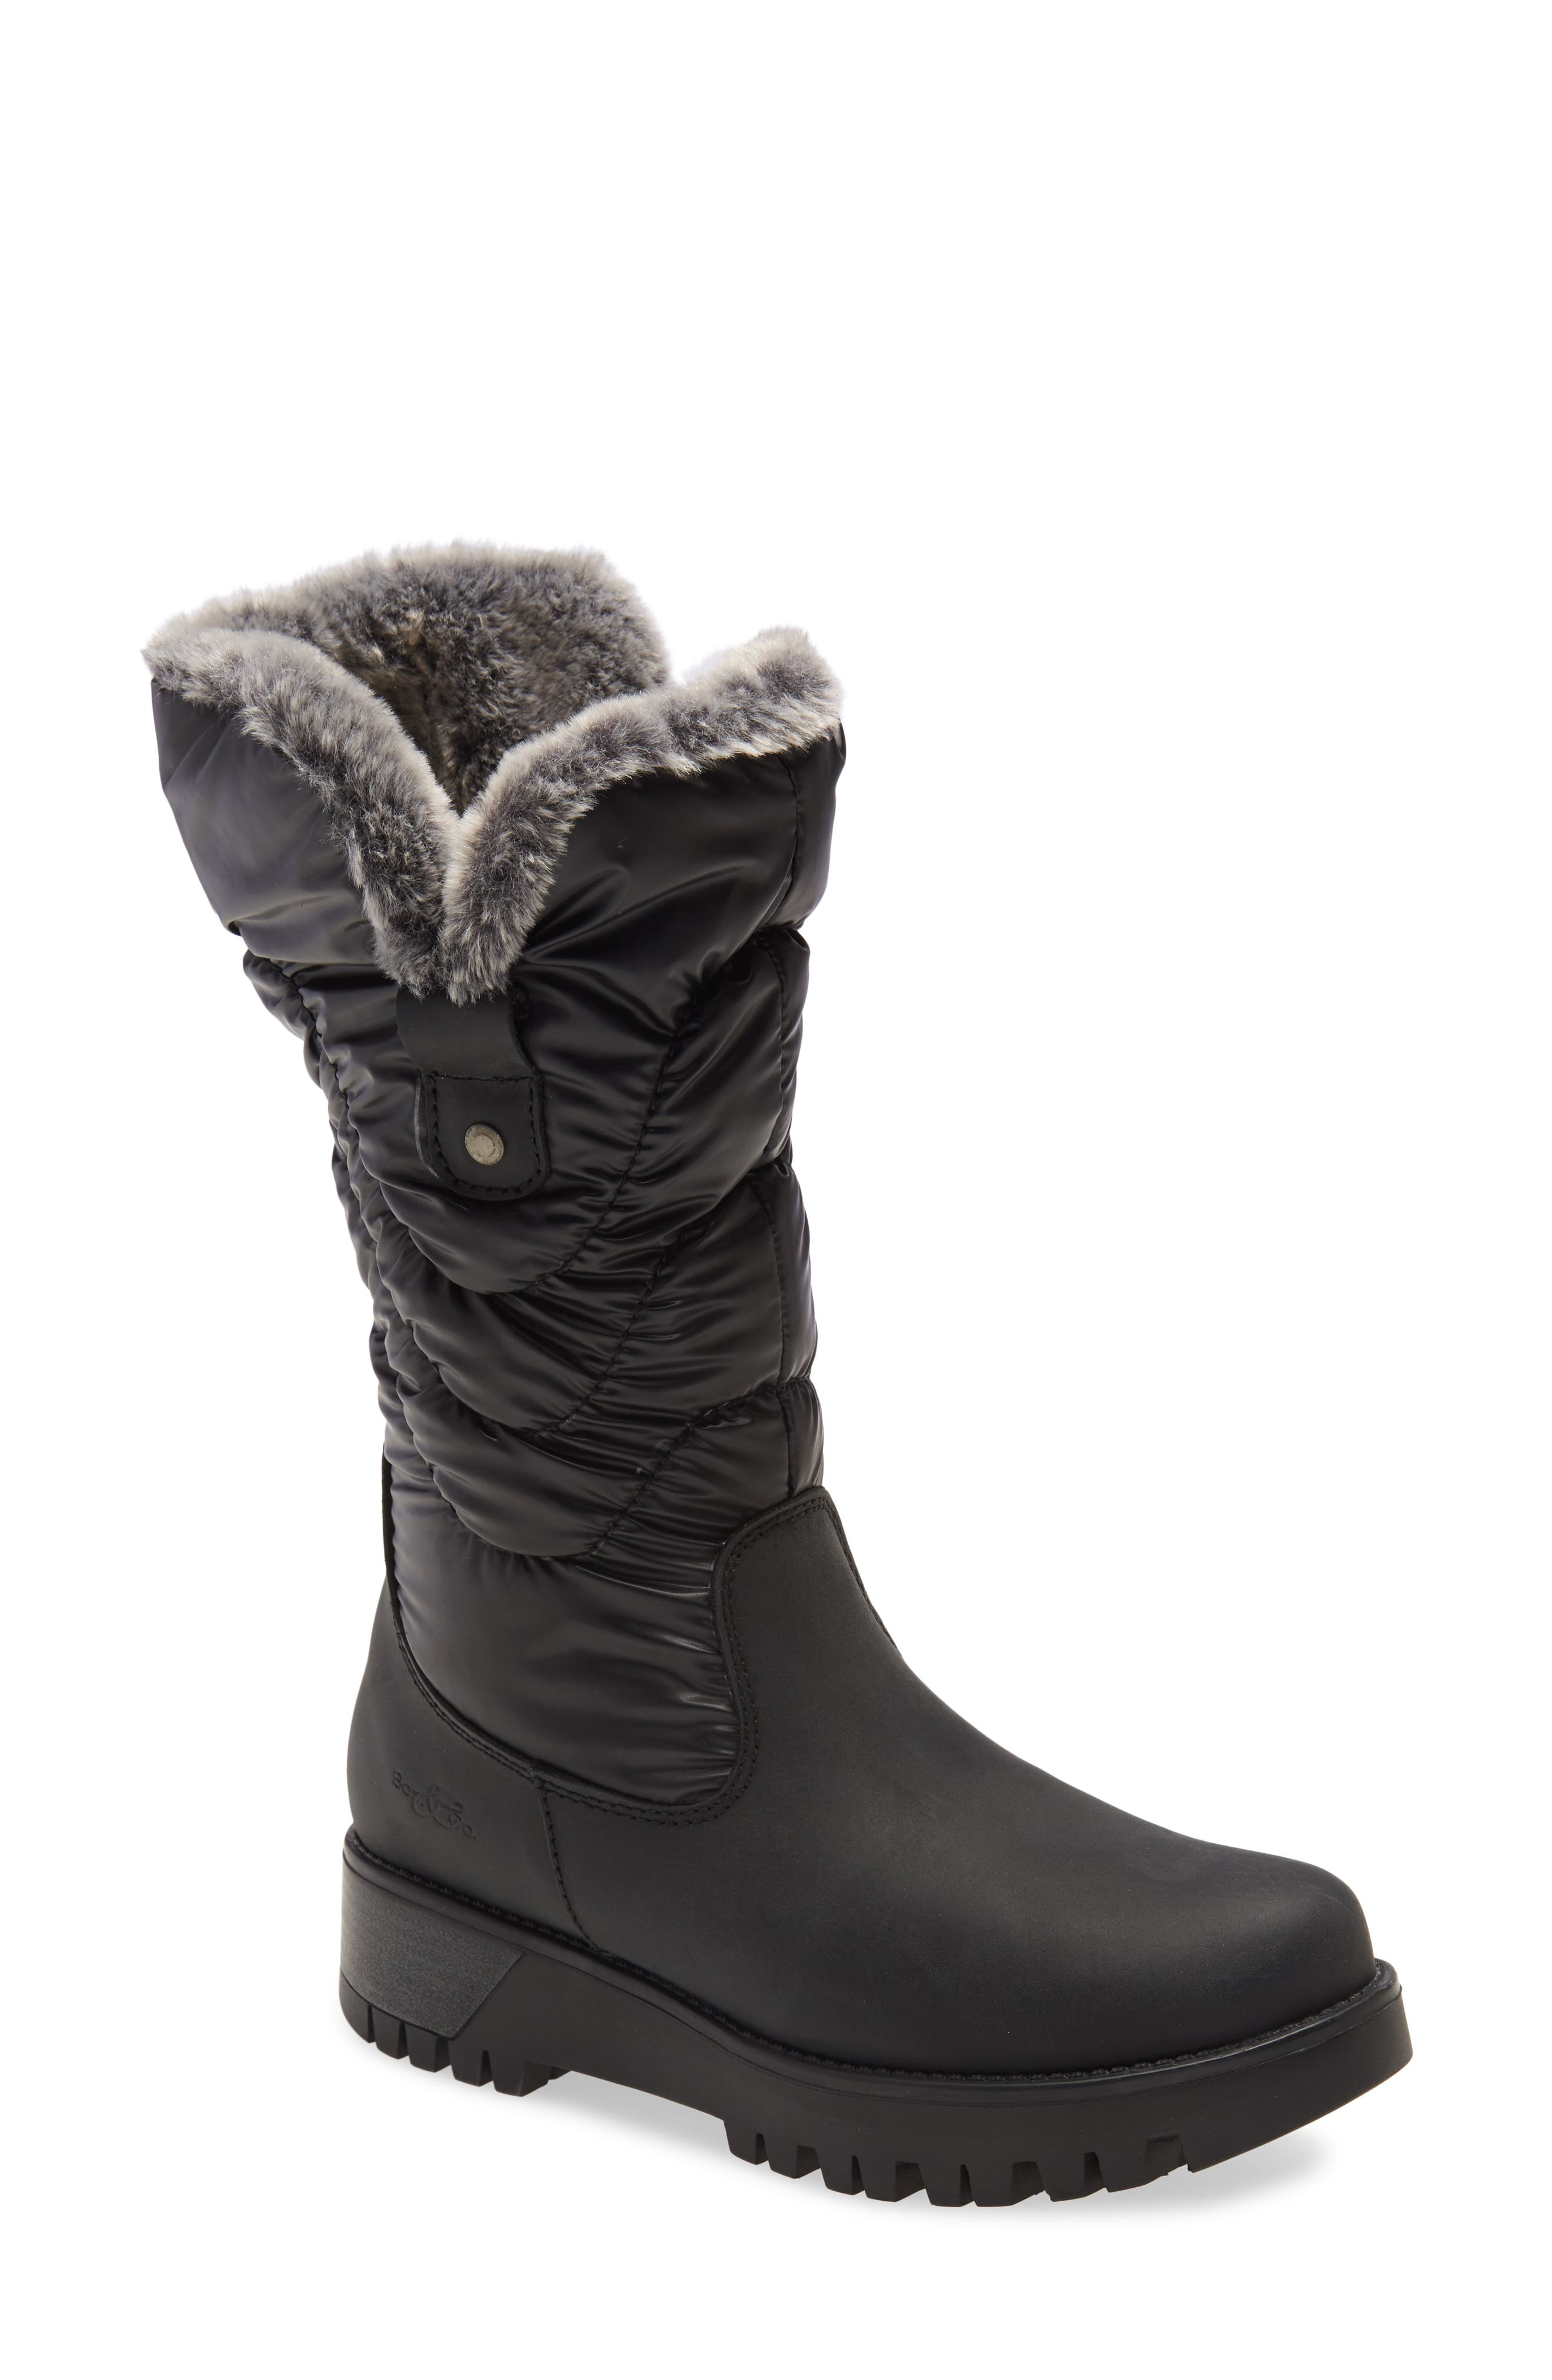 Stomp through the snow in style and comfort with this Primaloft-insulated leather boot lined in merino wool and featuring a fold-over shaft. The chunky lugged sole helps you keep a grip in treacherous, icy terrain, while a reflective back strip enhances visibility. Style Name: Bos. & Co. Astrid Primaloft Wool Lined Waterproof Boot (Women). Style Number: 6086136. Available in stores.